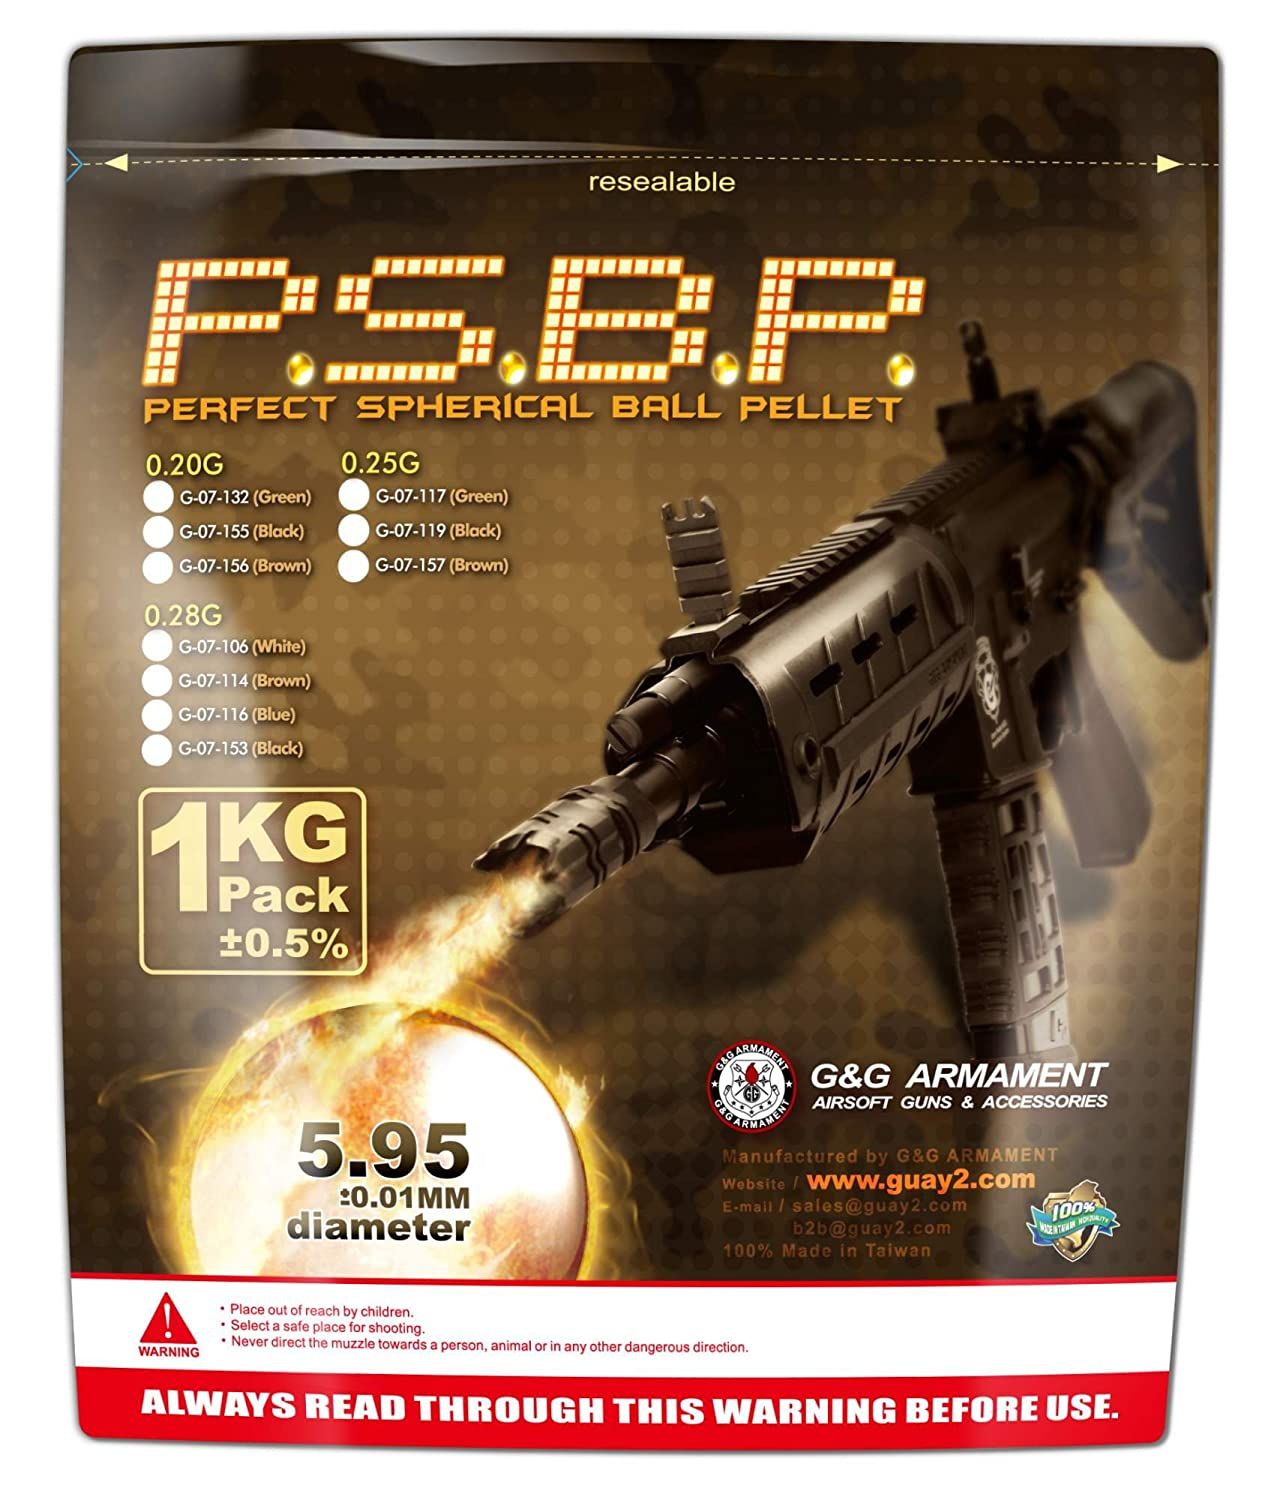 Billes G& G airsoft 0.28 Grs 1Kg